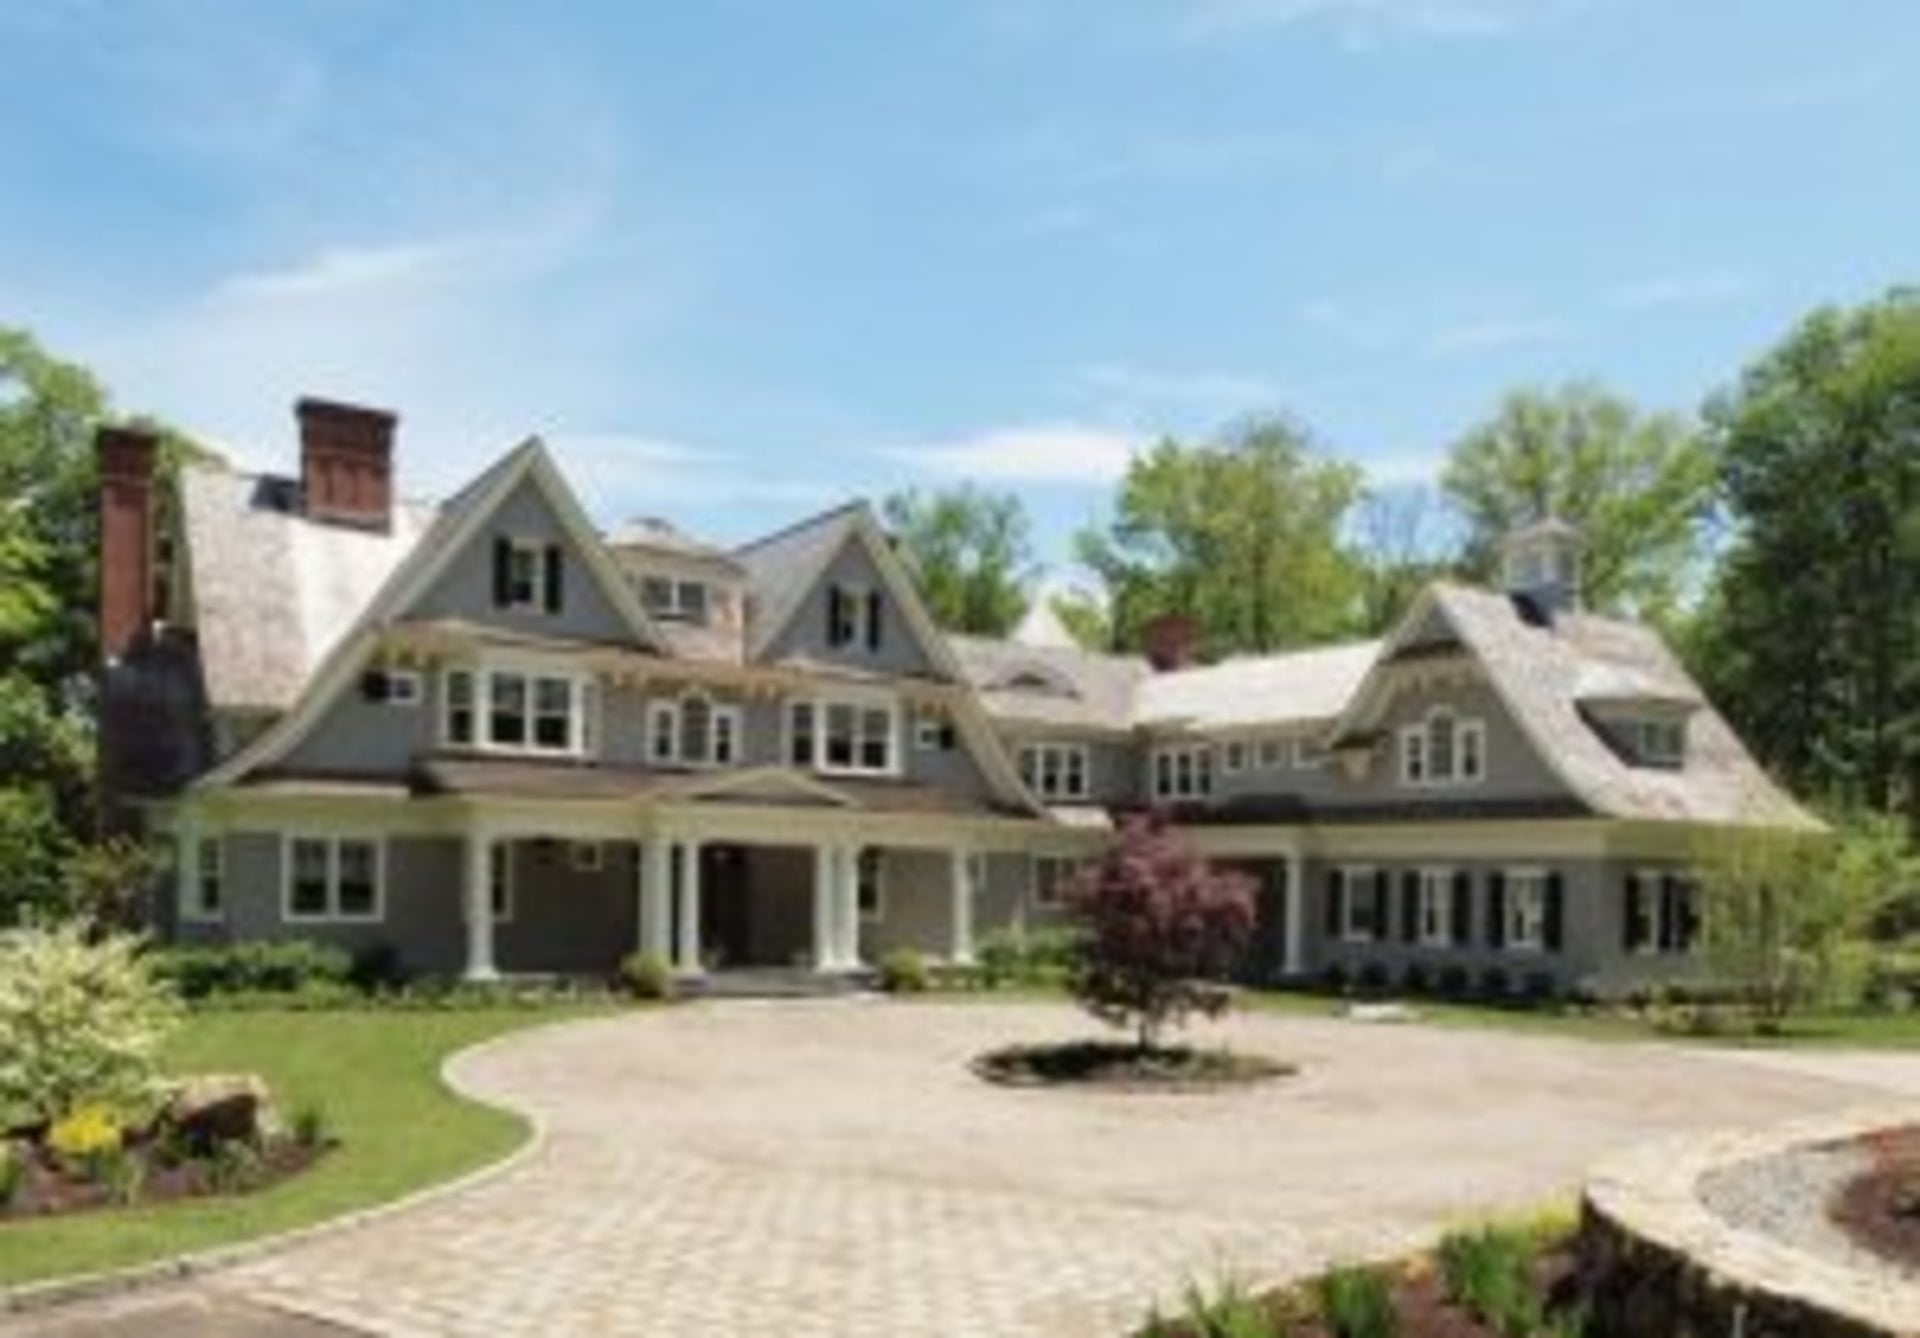 Custom Home Design/Build: Process Overview - Building Your Home